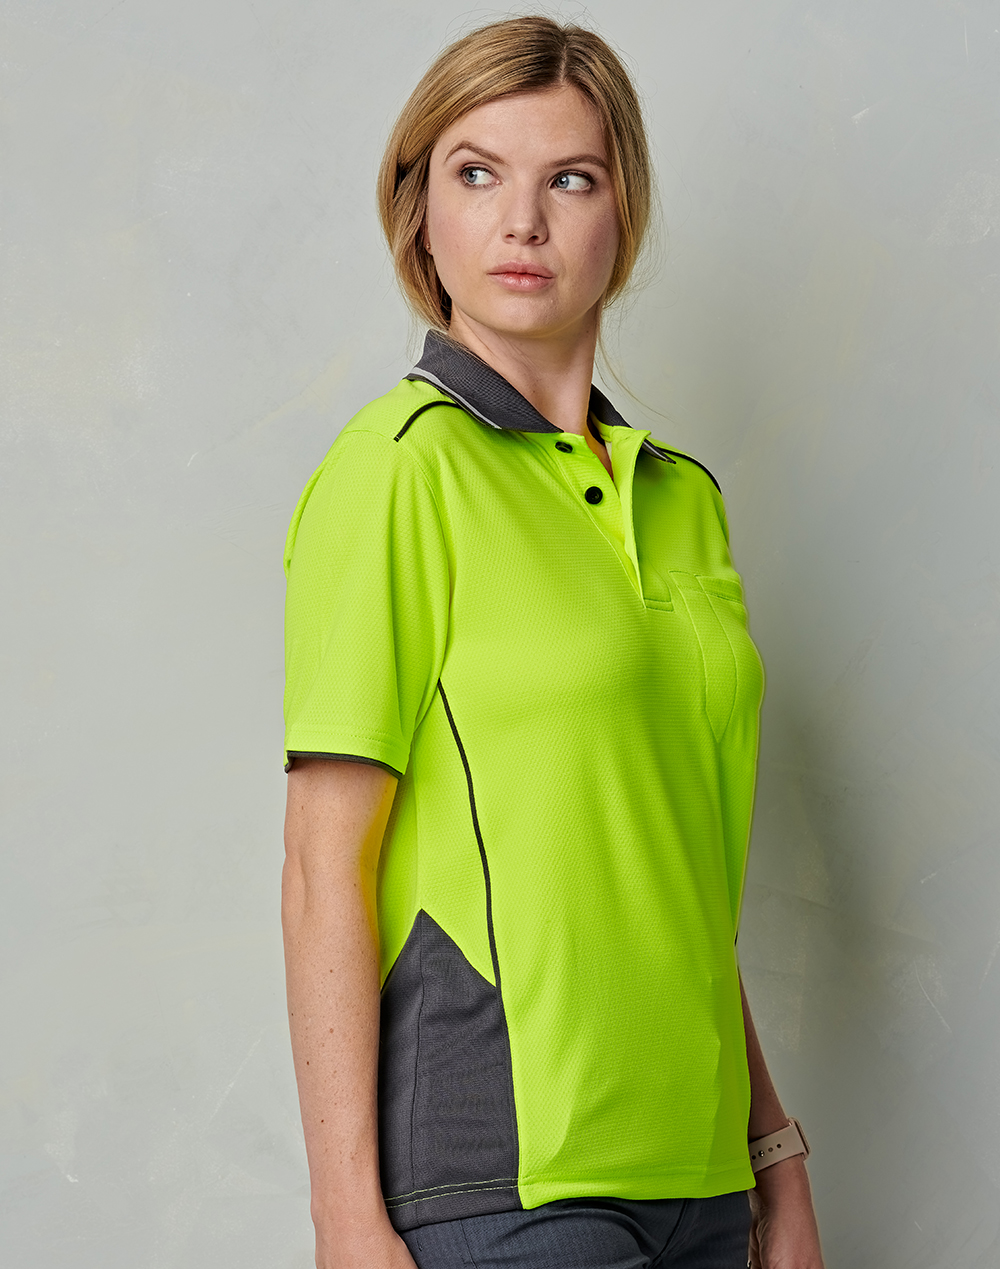 SW79 UNISEX HI-VIS BAMBOO CHARCOAL VENTED SS POLO